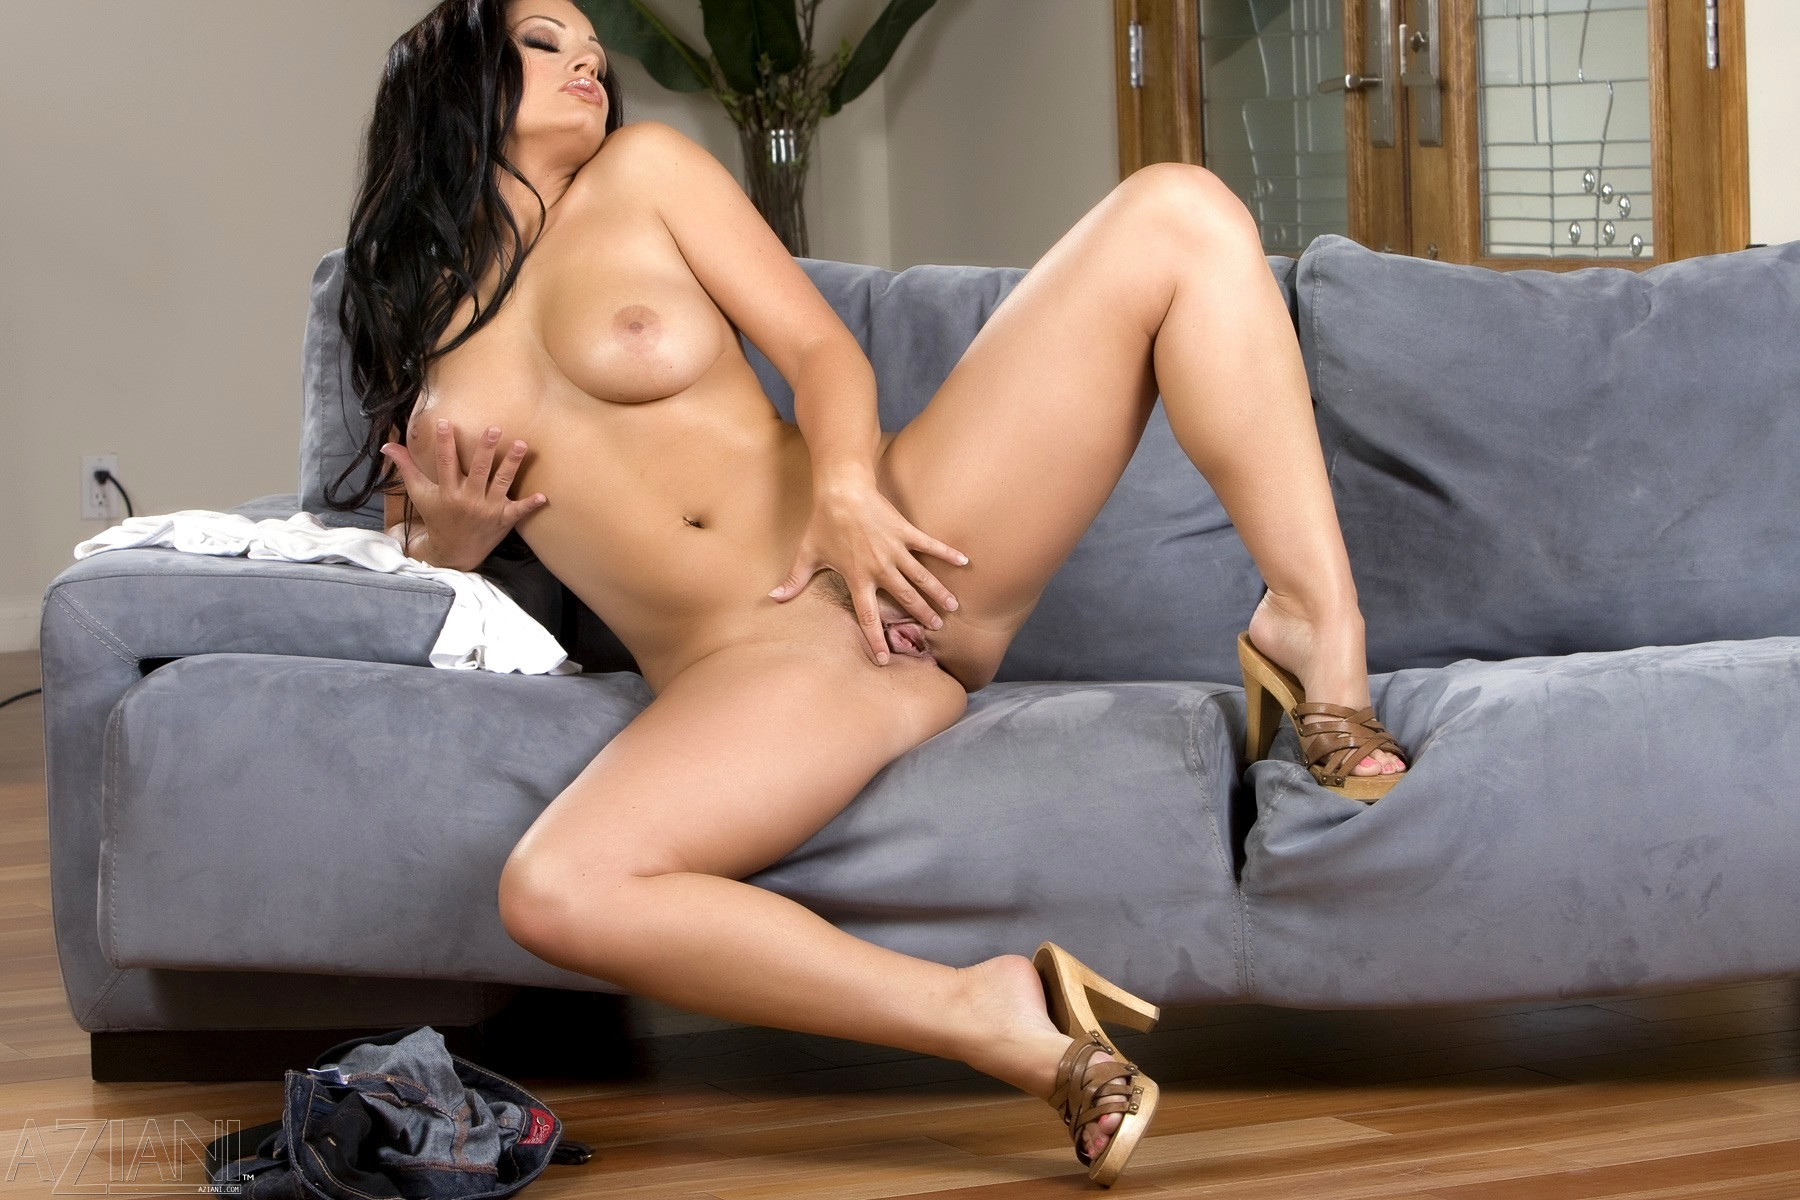 Aria giovanni nude pussy wallpaper fucking kinky sexygirls